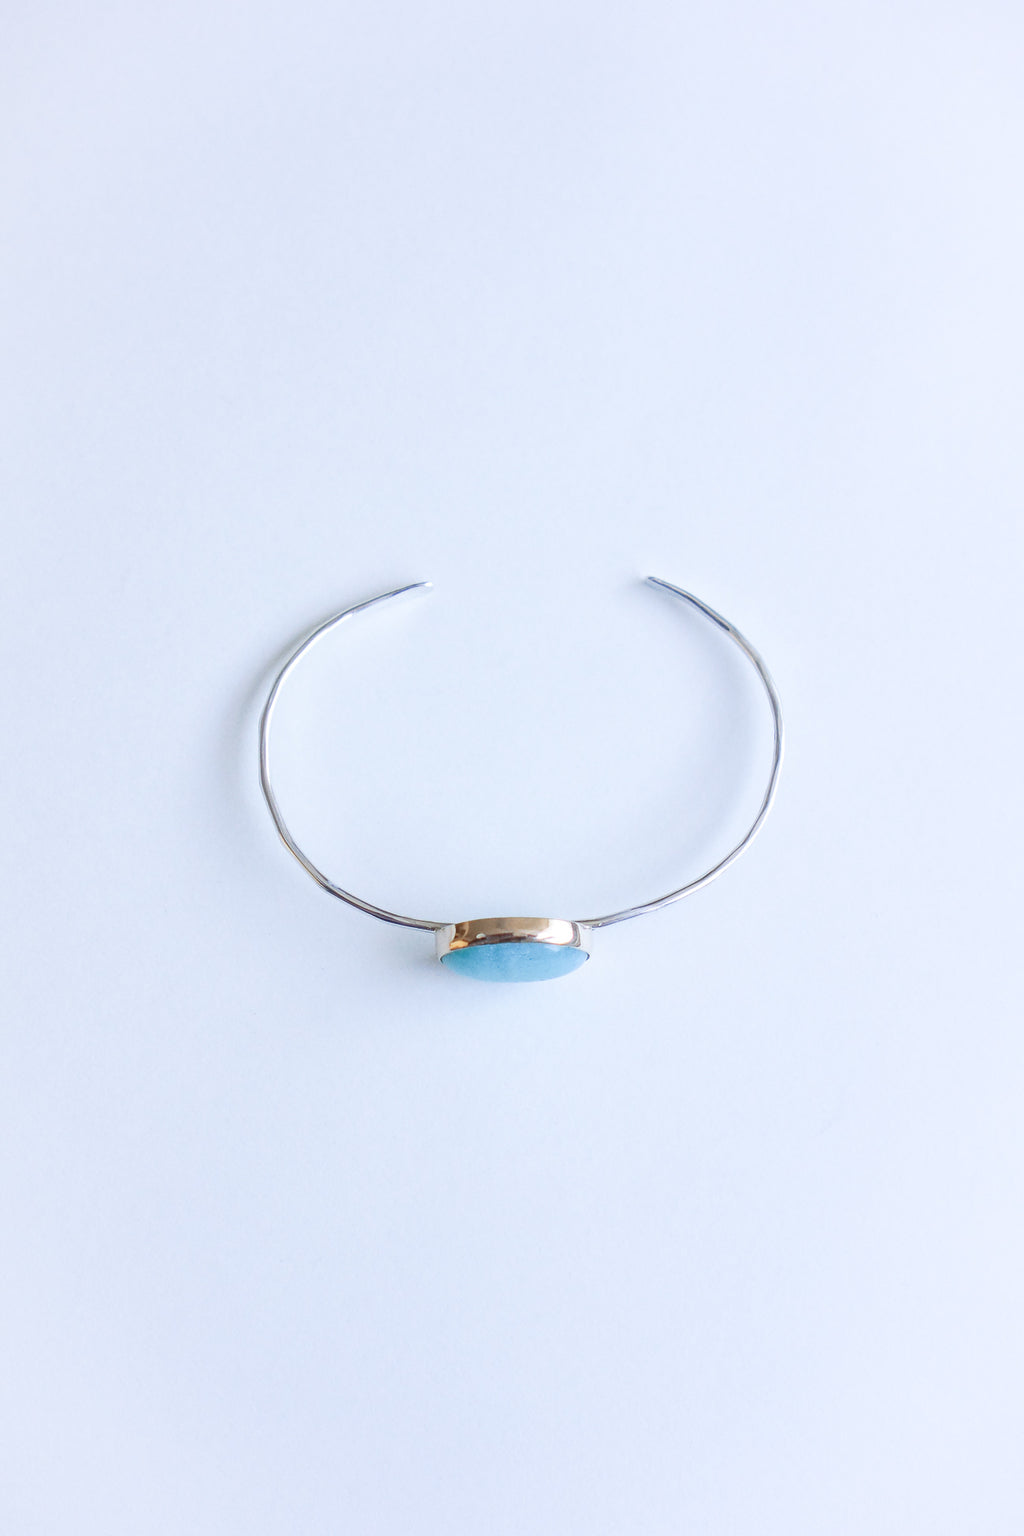 Melissa Joy Manning 14K Yellow Gold and Sterling Silver Amazonite Cuff Bracelet